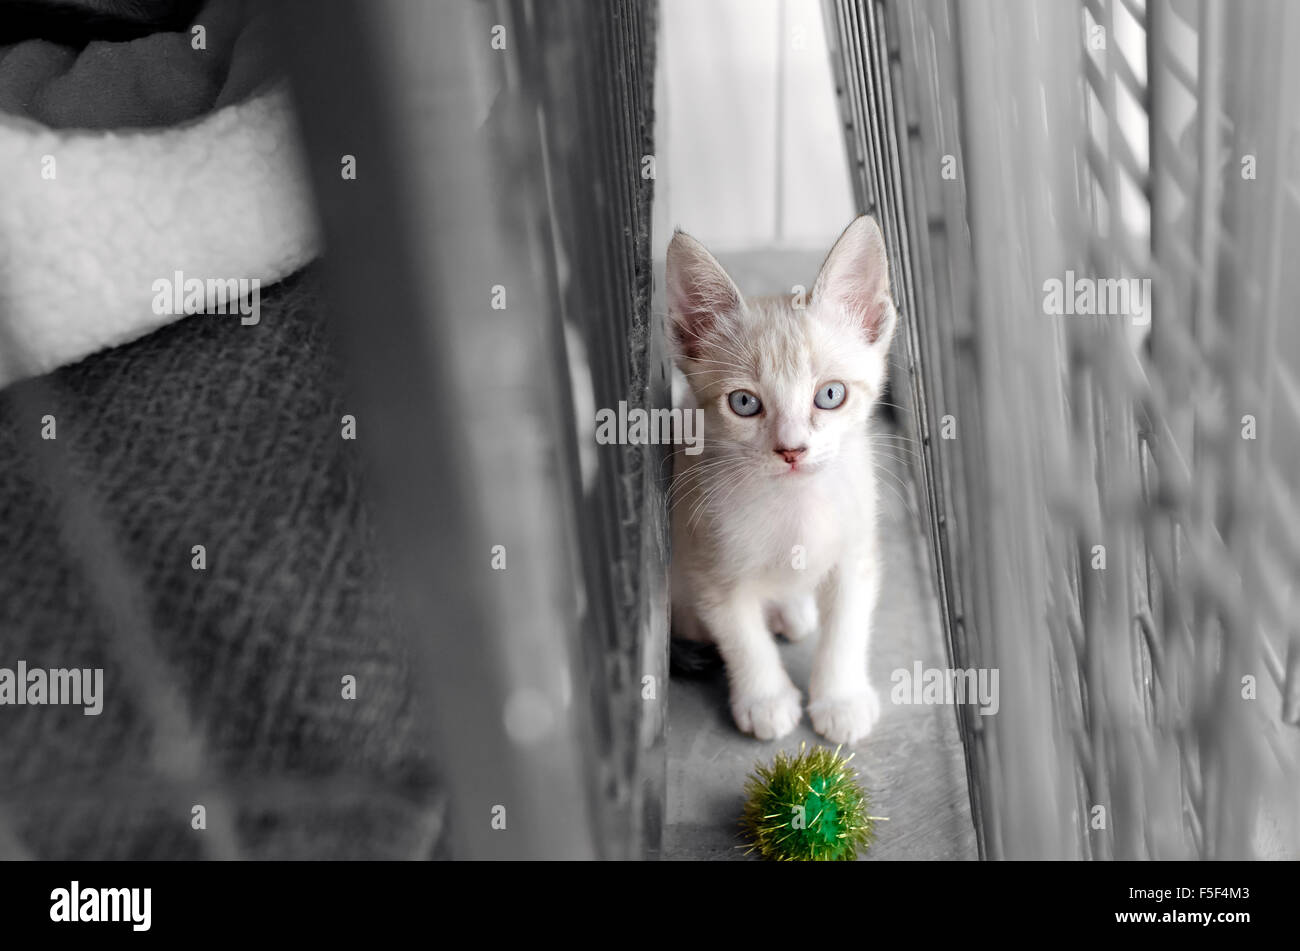 Shelter animal is a cute white kitten  in an animal shelter looking up wondering if someone will adopt him today. - Stock Image